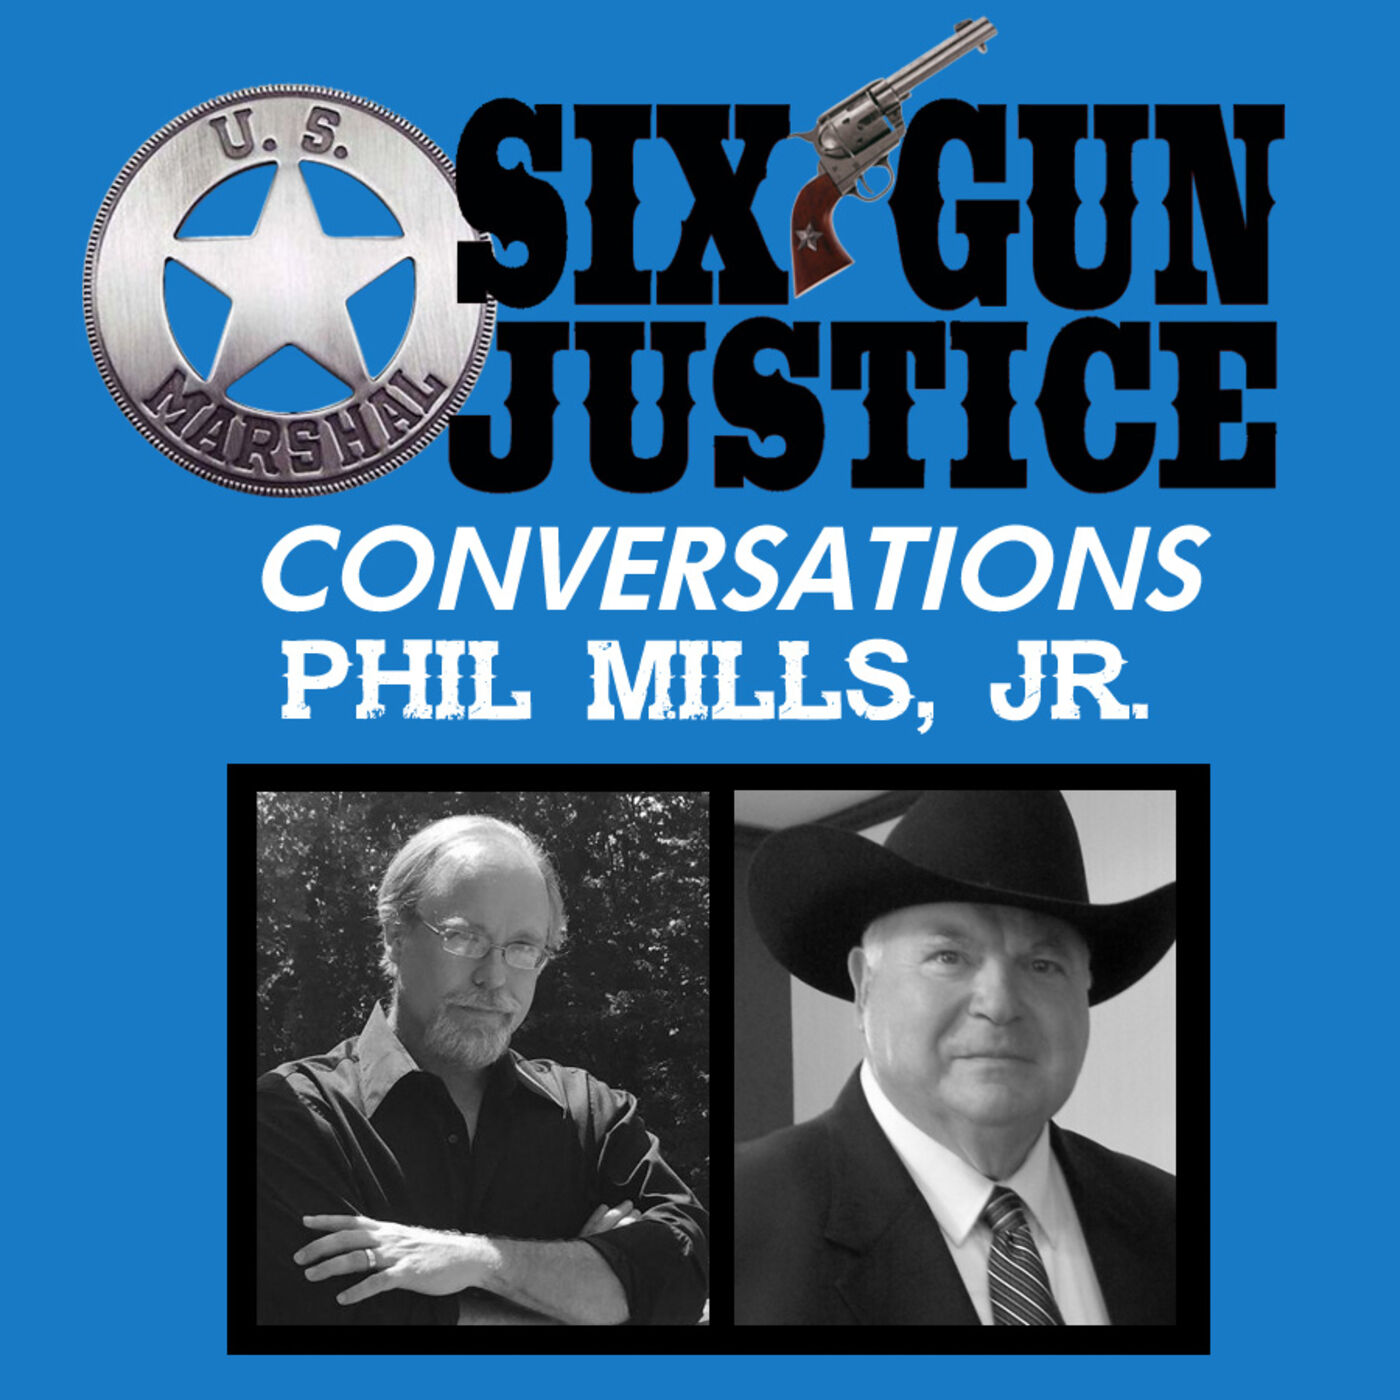 SIX-GUN JUSTICE CONVERSATIONS—PHIL MILLS, JR.